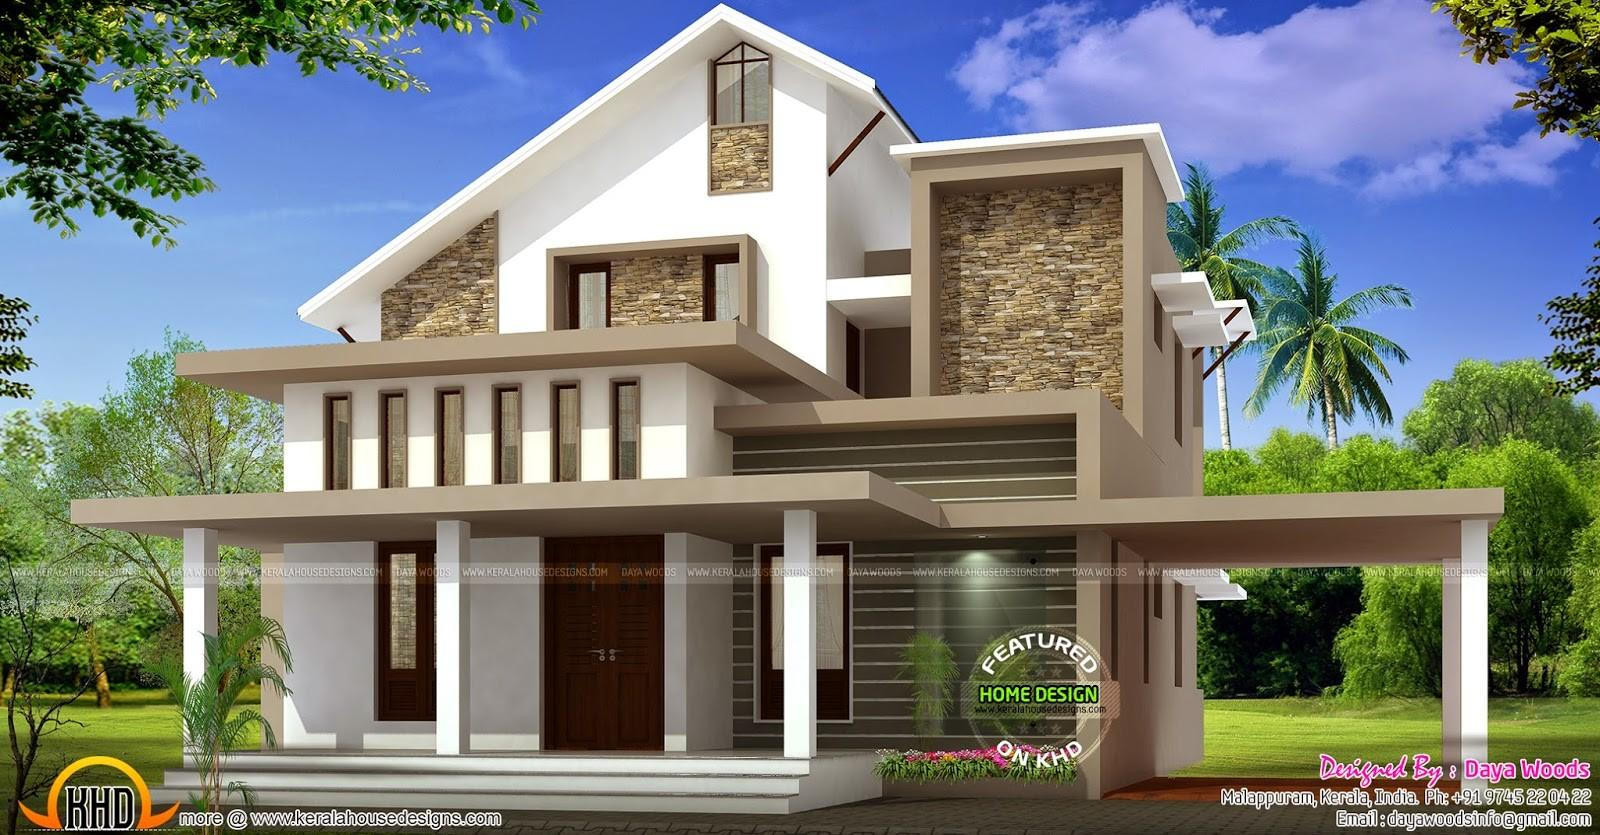 Low Budget Semi Contemporary Home Kerala Design